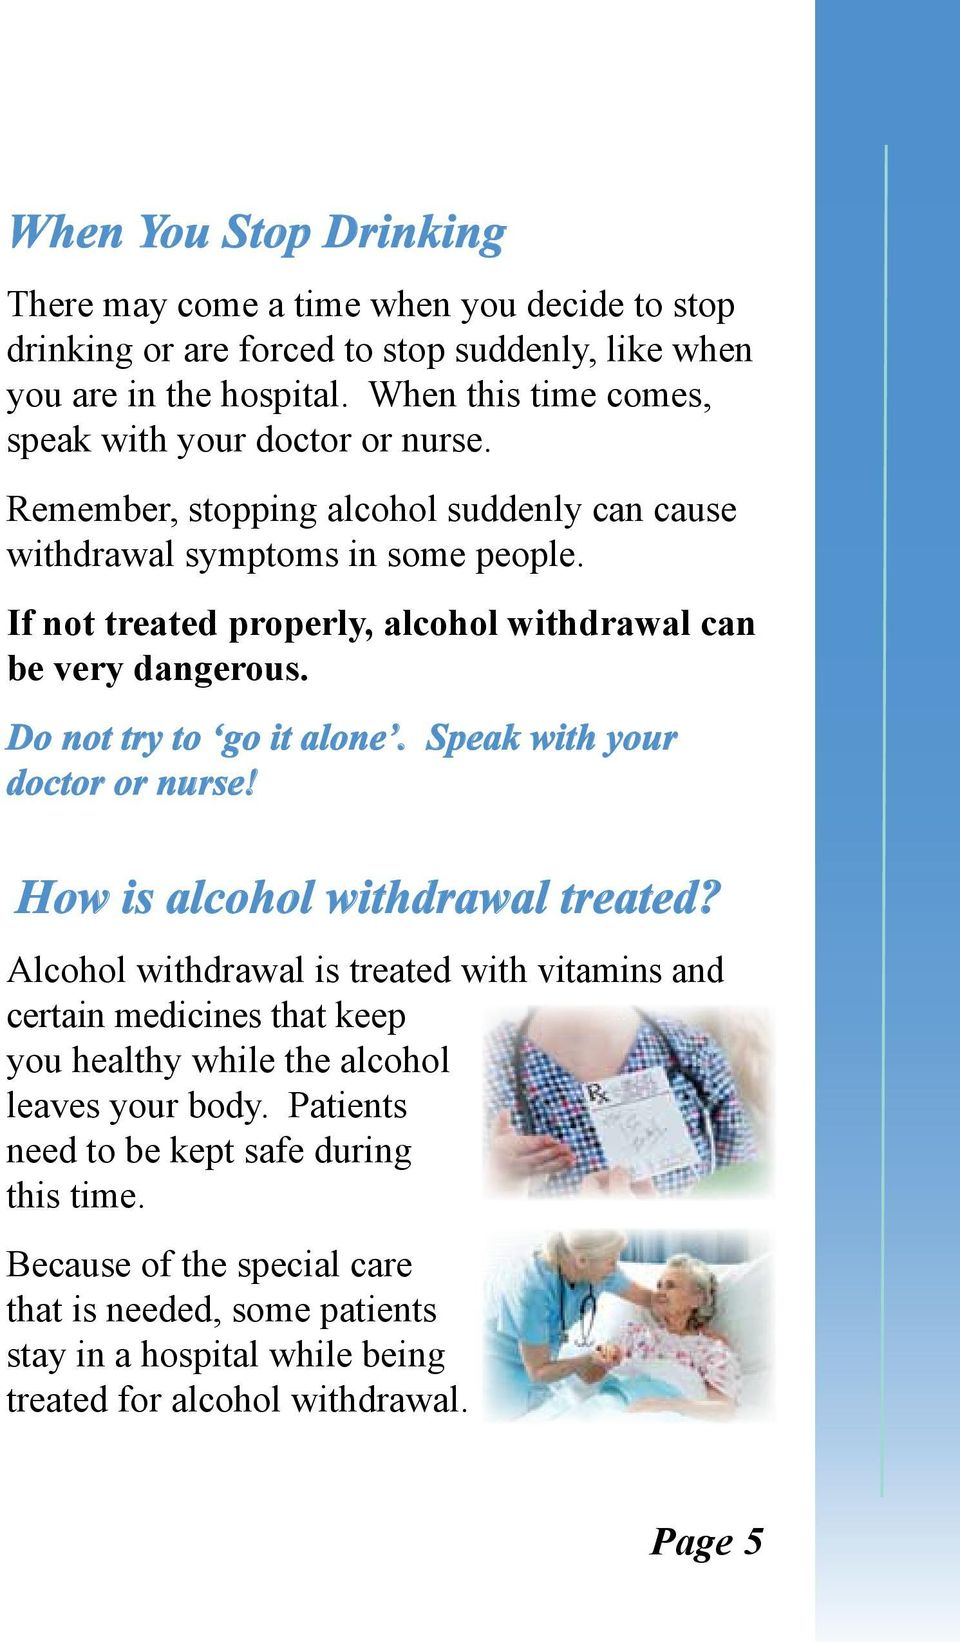 If not treated properly, alcohol withdrawal can be very dangerous. Do not try to go it alone. Speak with your doctor or nurse! How is alcohol withdrawal treated?